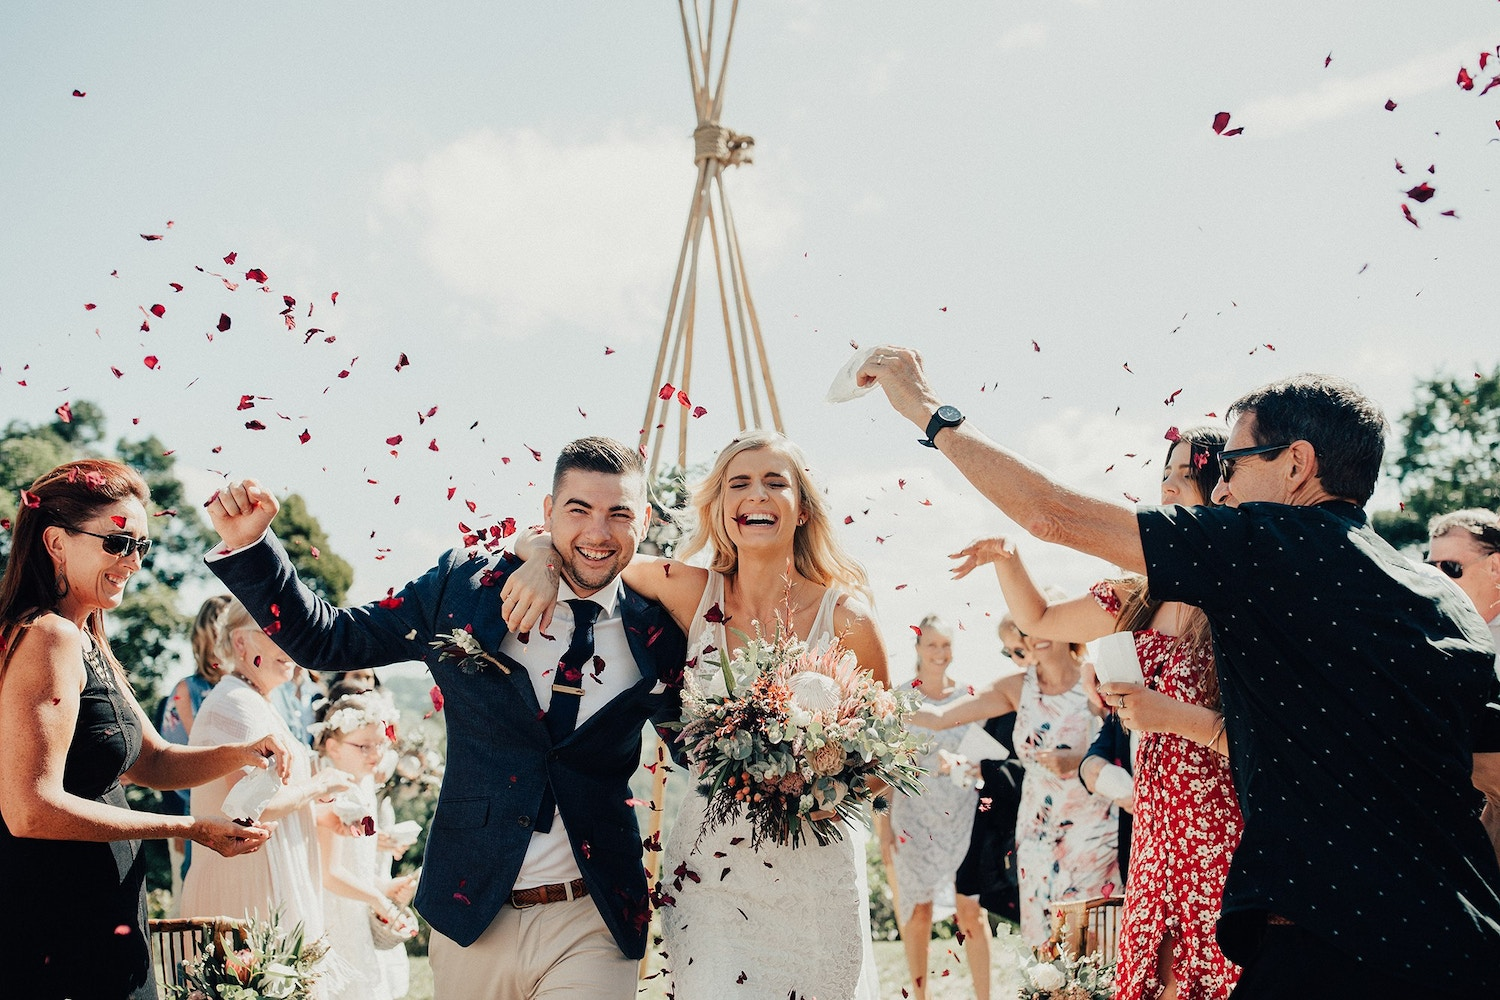 WHAT TO LOOK FOR WHEN CHOOSING A CELEBRANT...